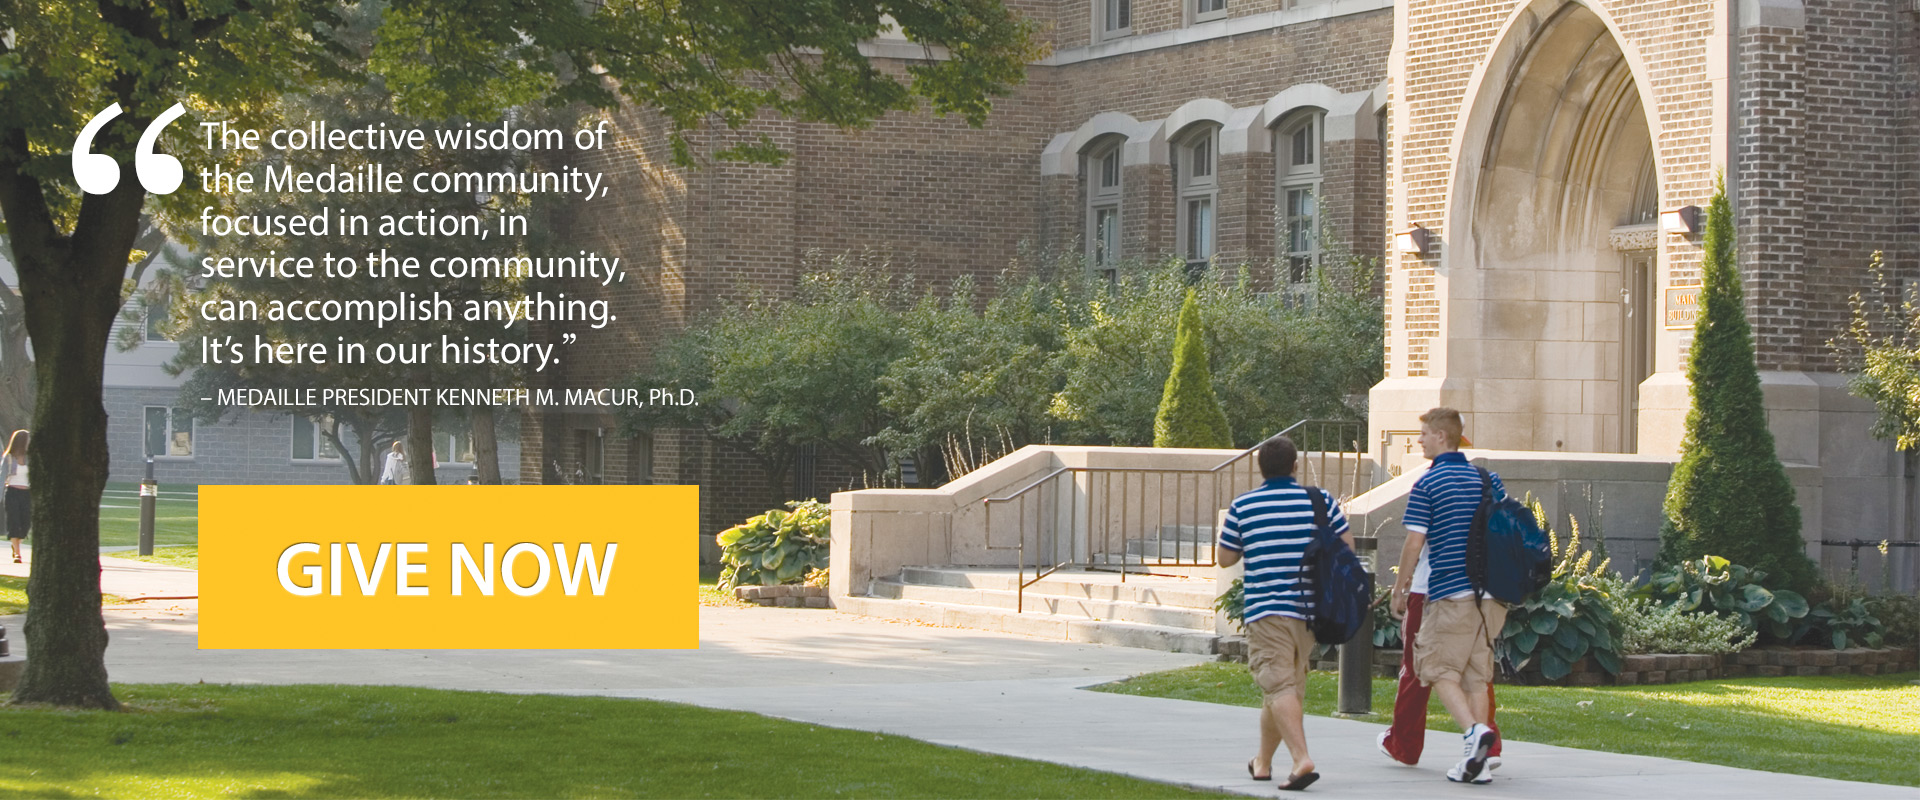 The collective wisdom of the Medaille community, focused in action, in service to the community, can accomplish anything.  It's here in our history -Medaille President Kenneth Macur